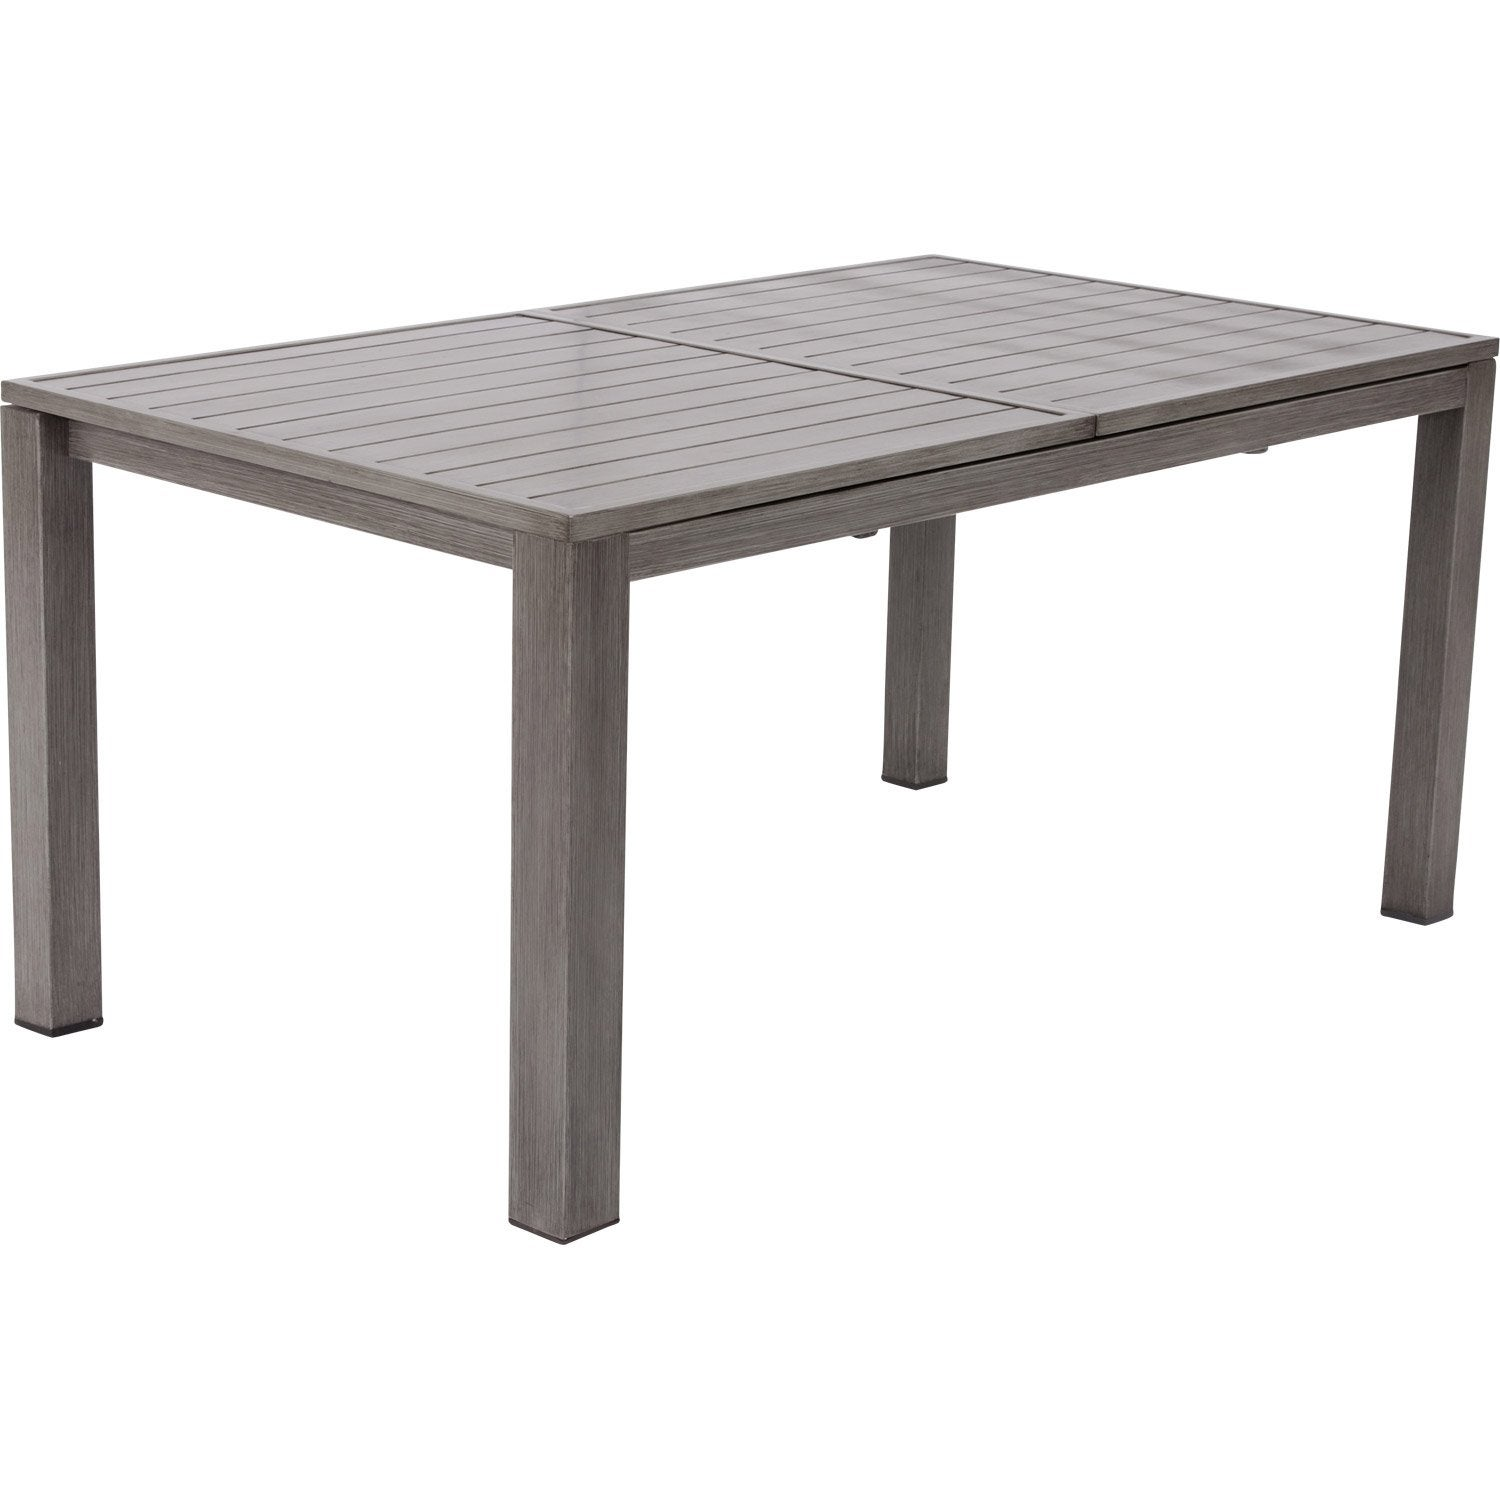 Table de jardin naterial antibes rectangulaire gris look for Plan de construction table de jardin en bois